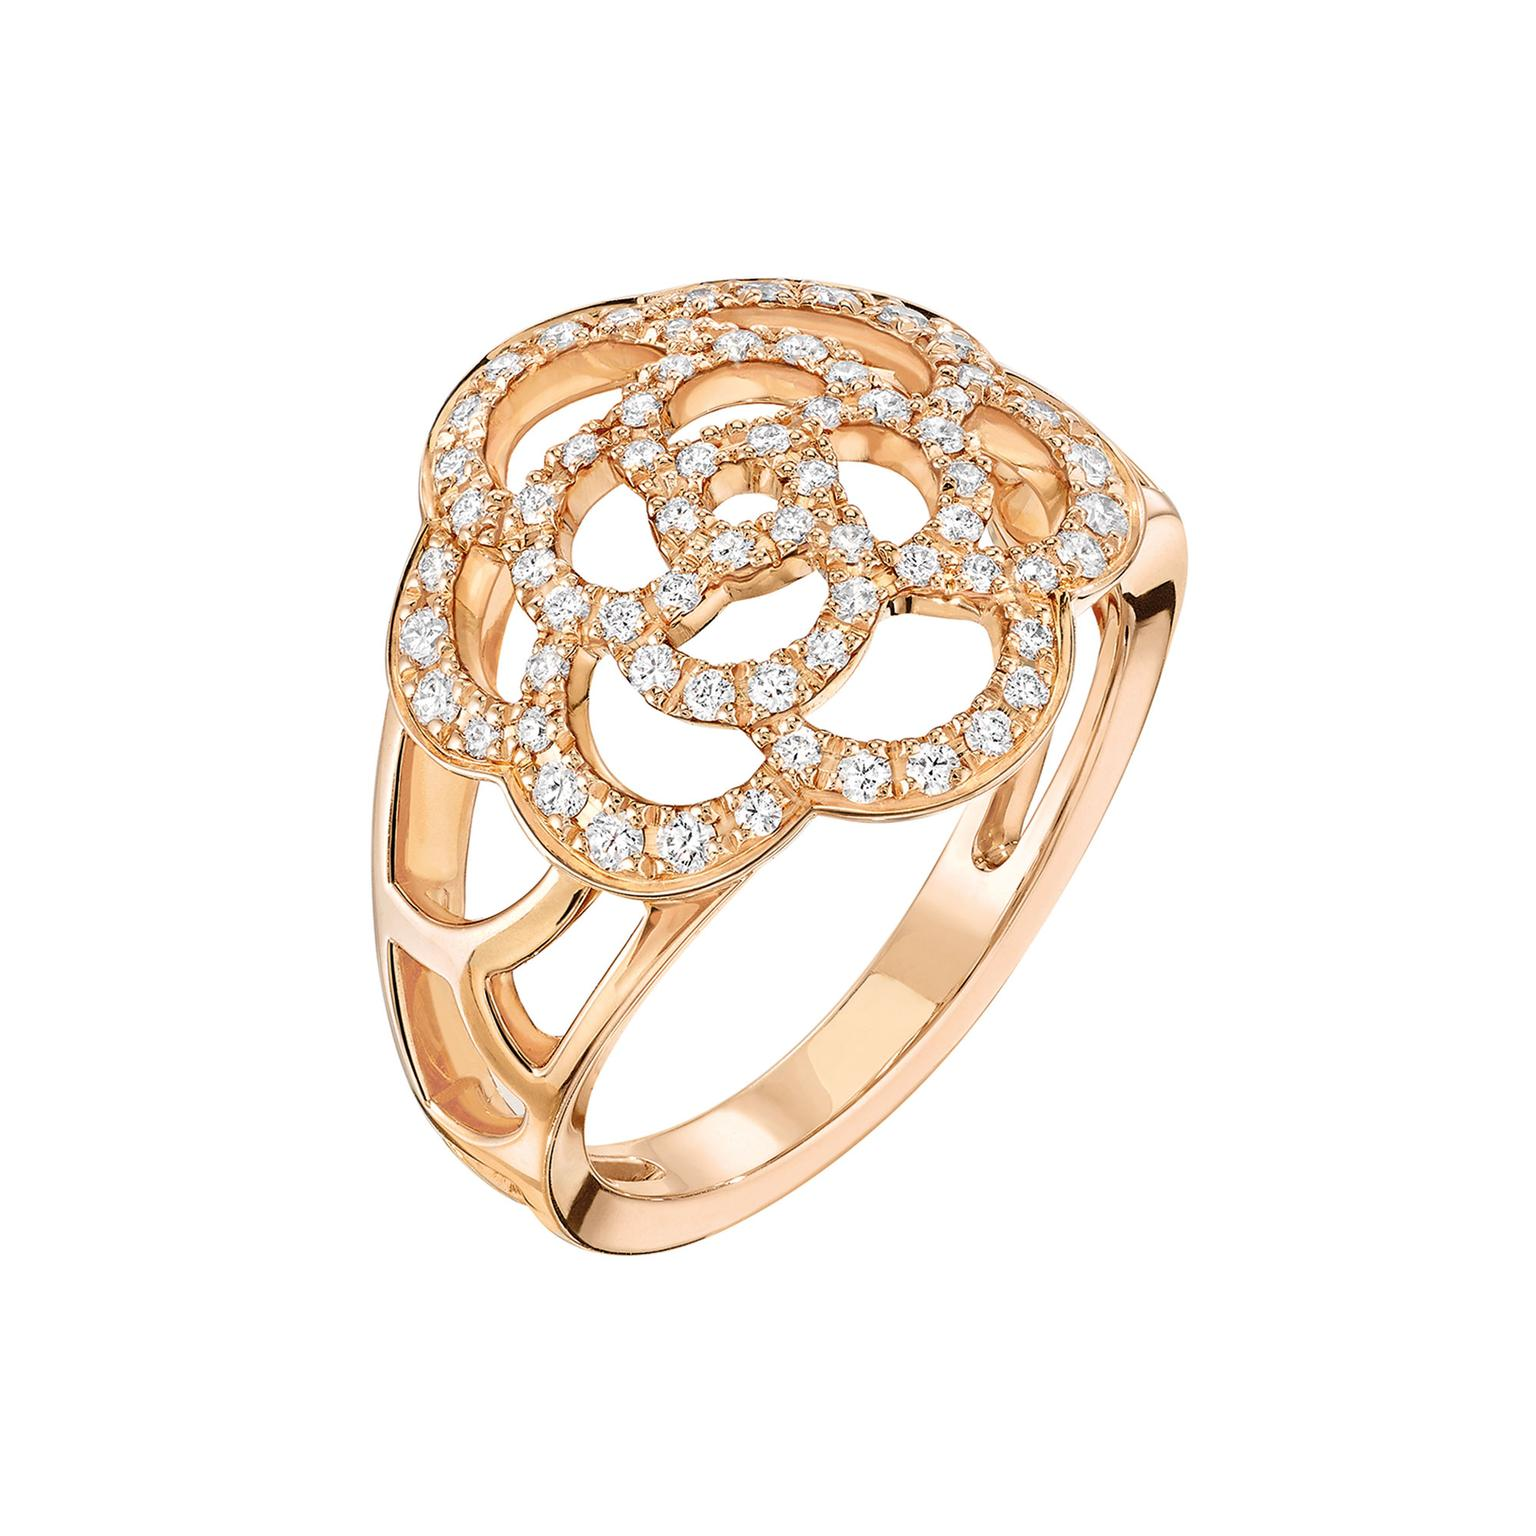 Chanel Camélia ring in rose gold and diamonds